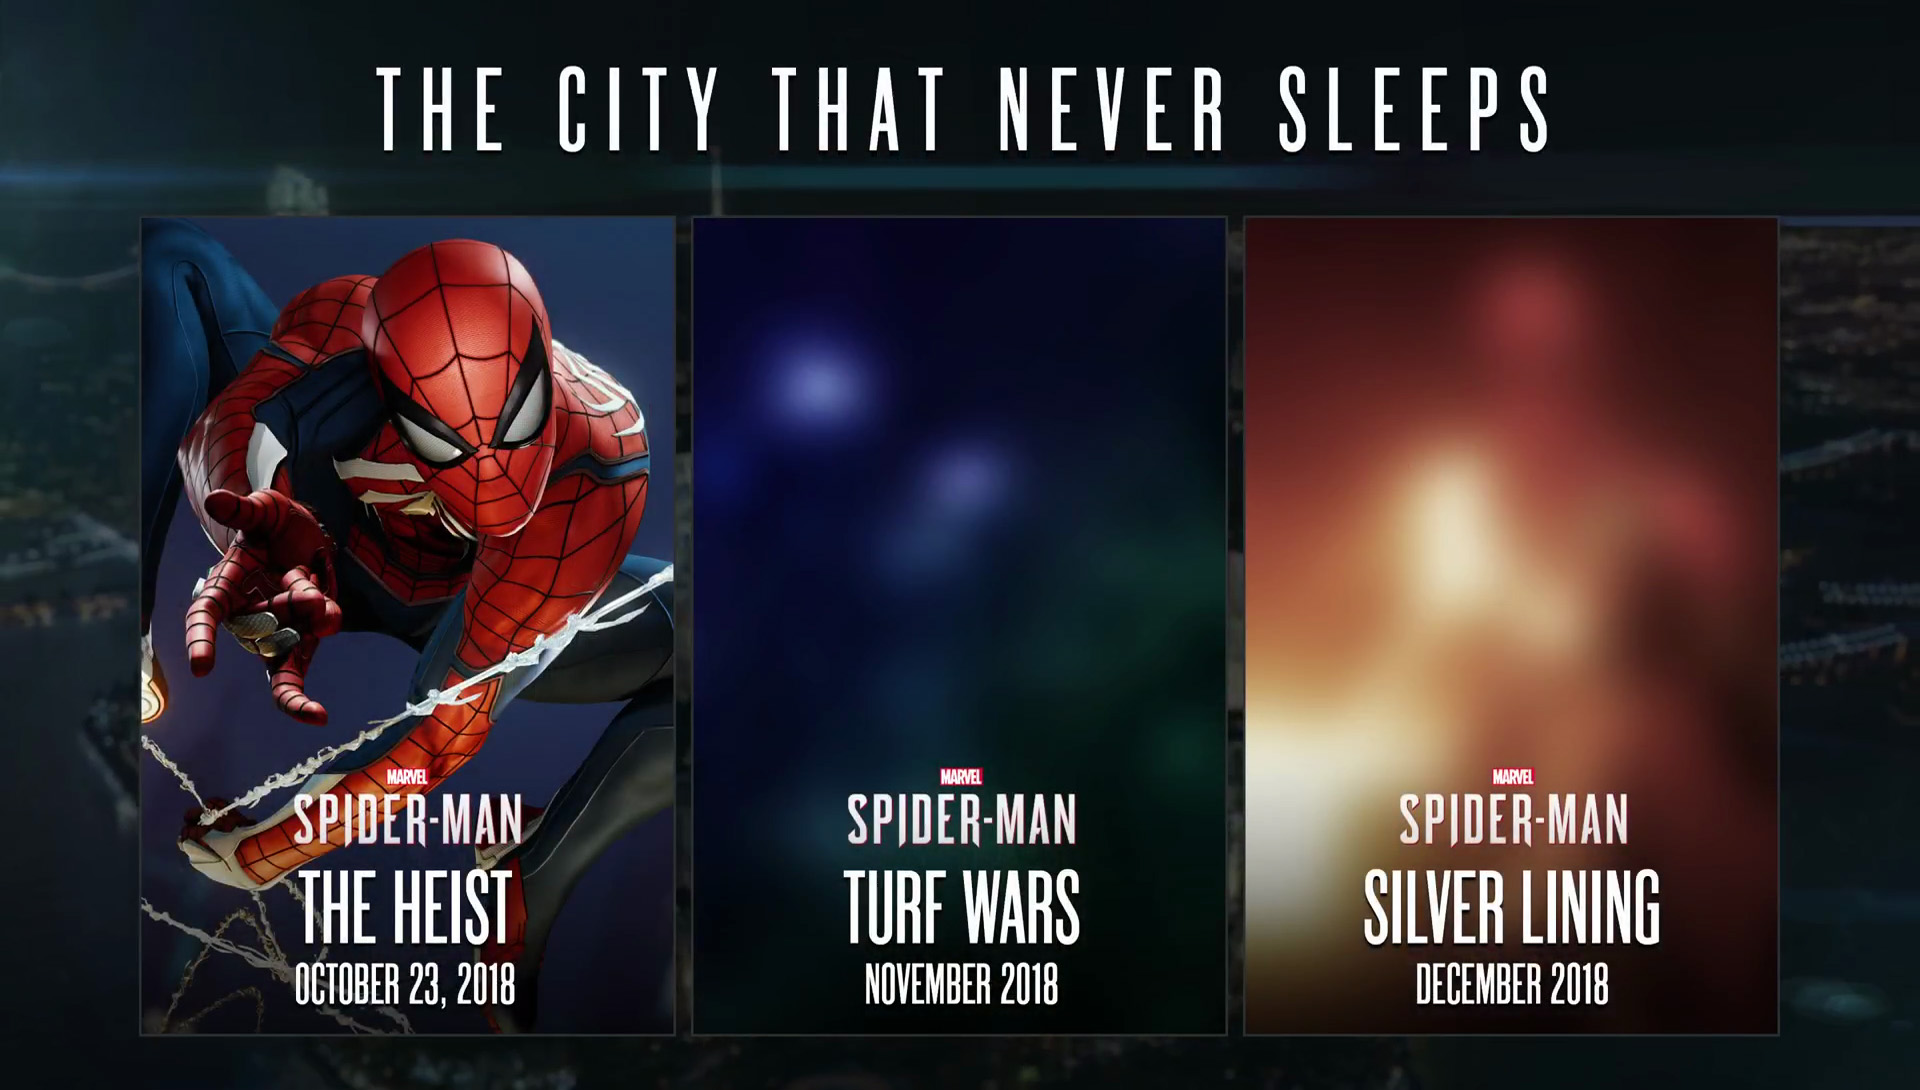 spider-man-the-city-that-never-sleeps-ra